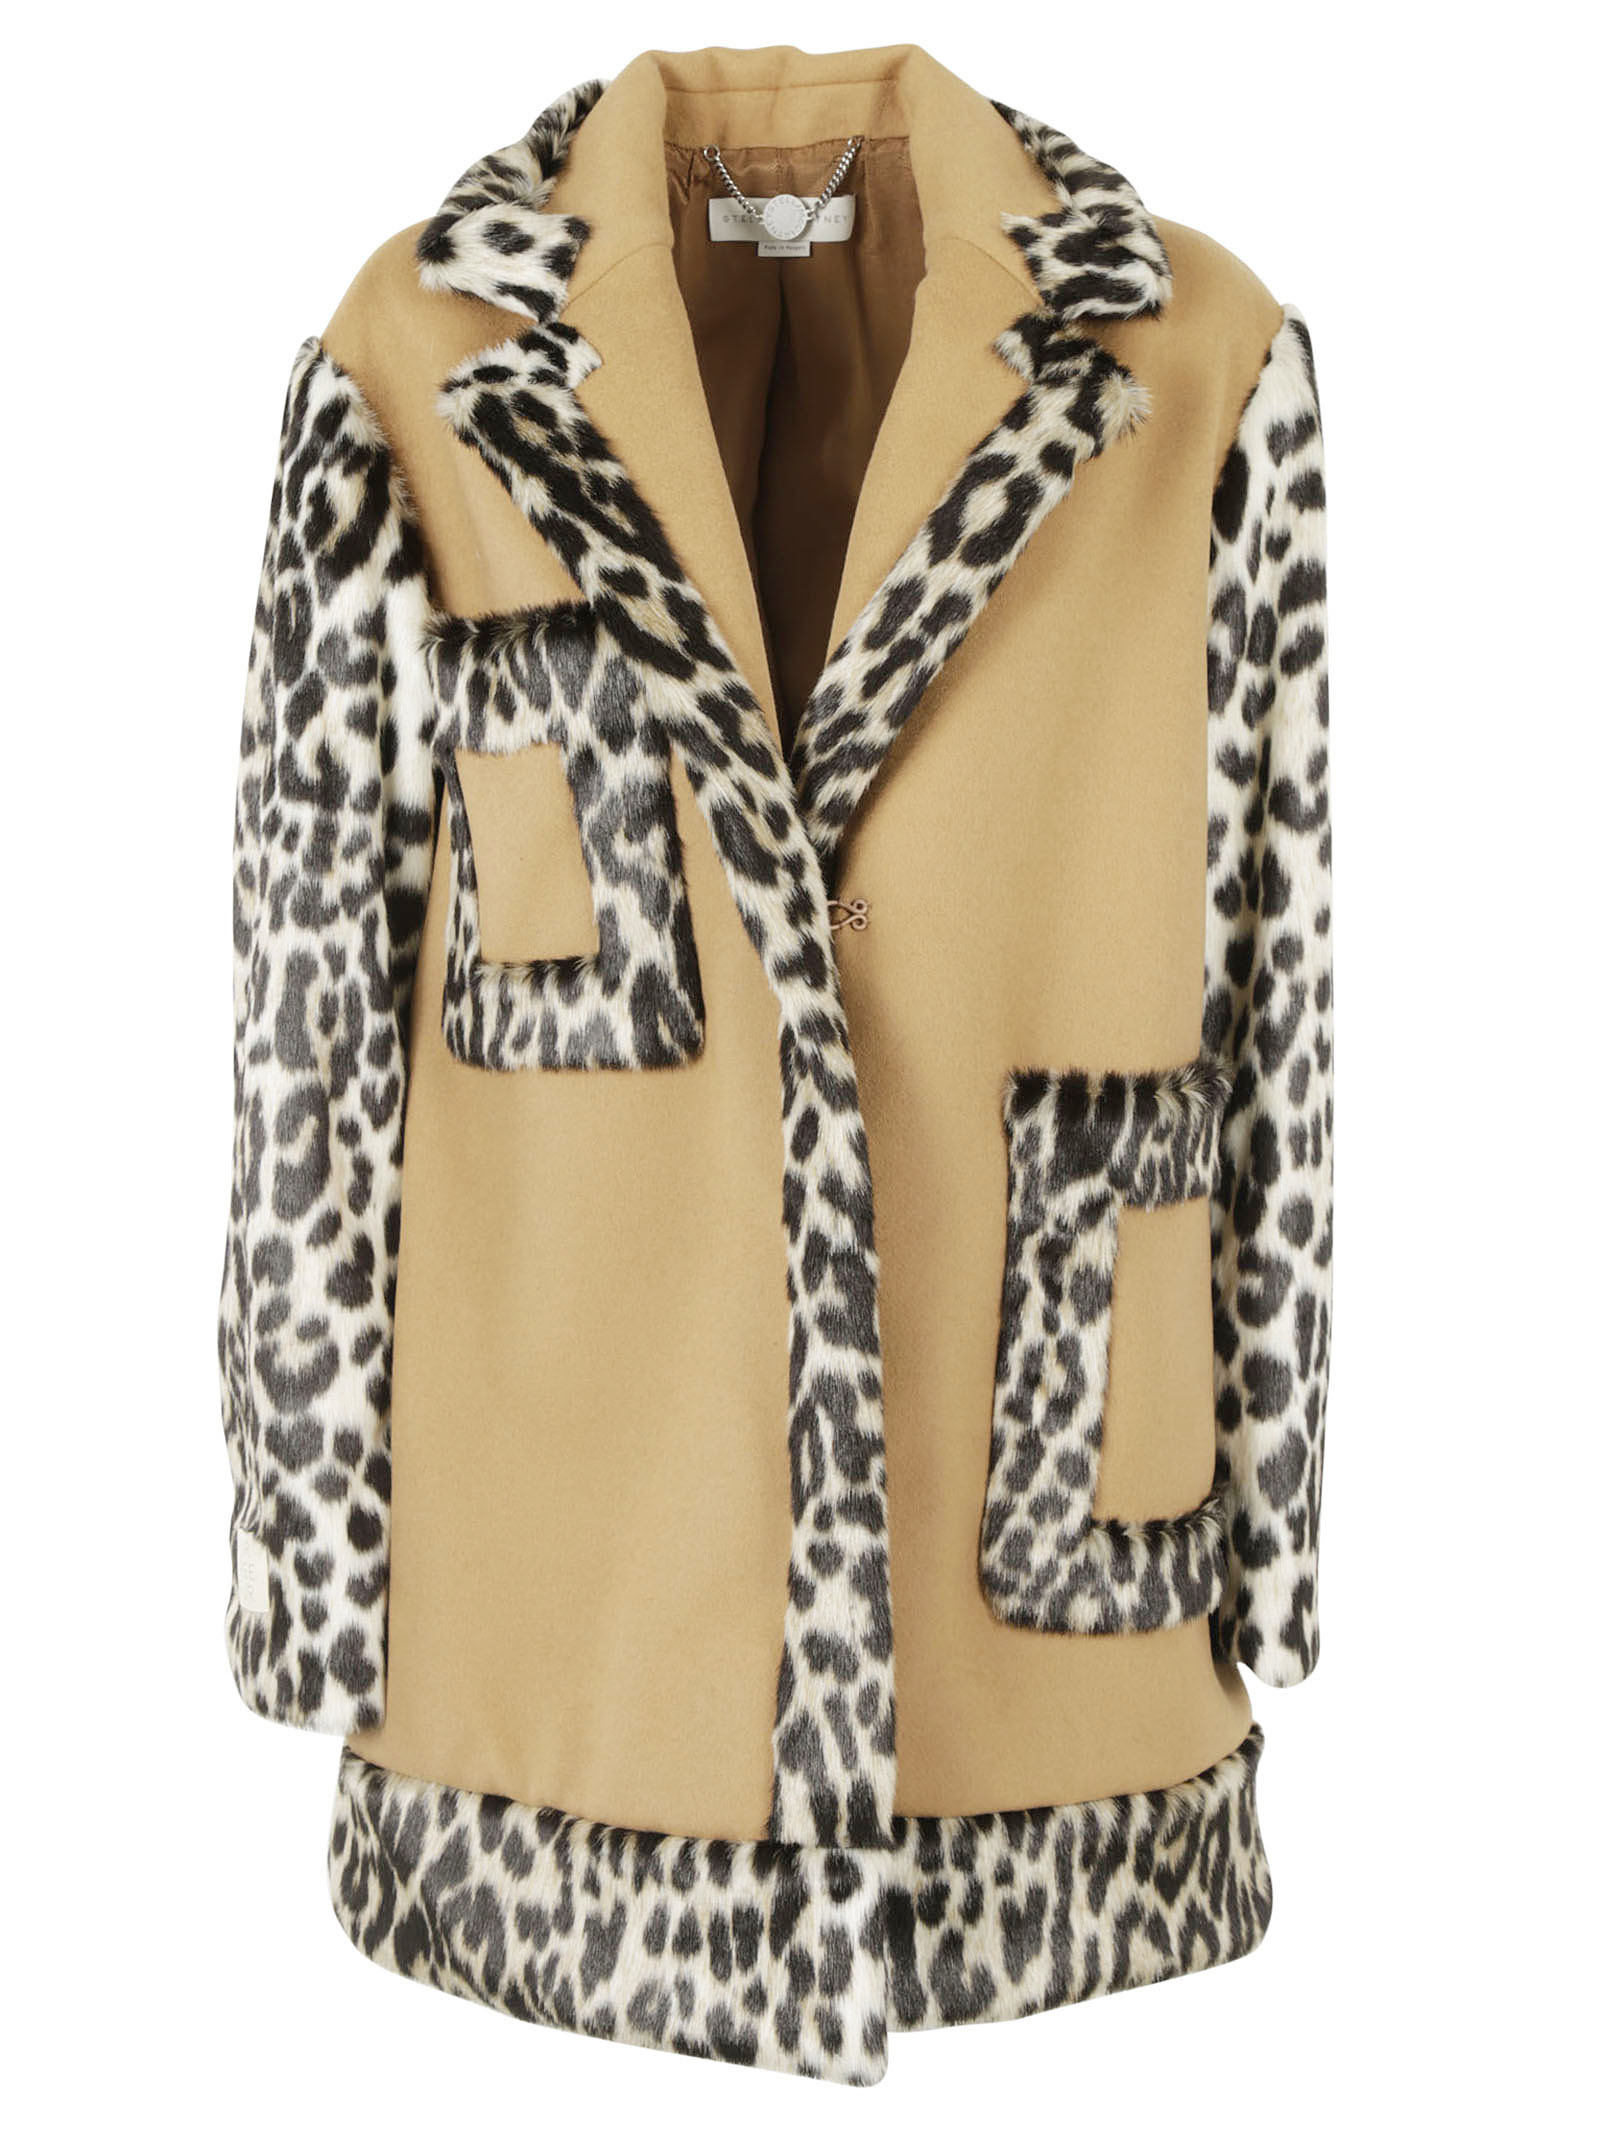 Stella McCartney Oversize Leopard Accent Coat - Stella McCartney - Hair